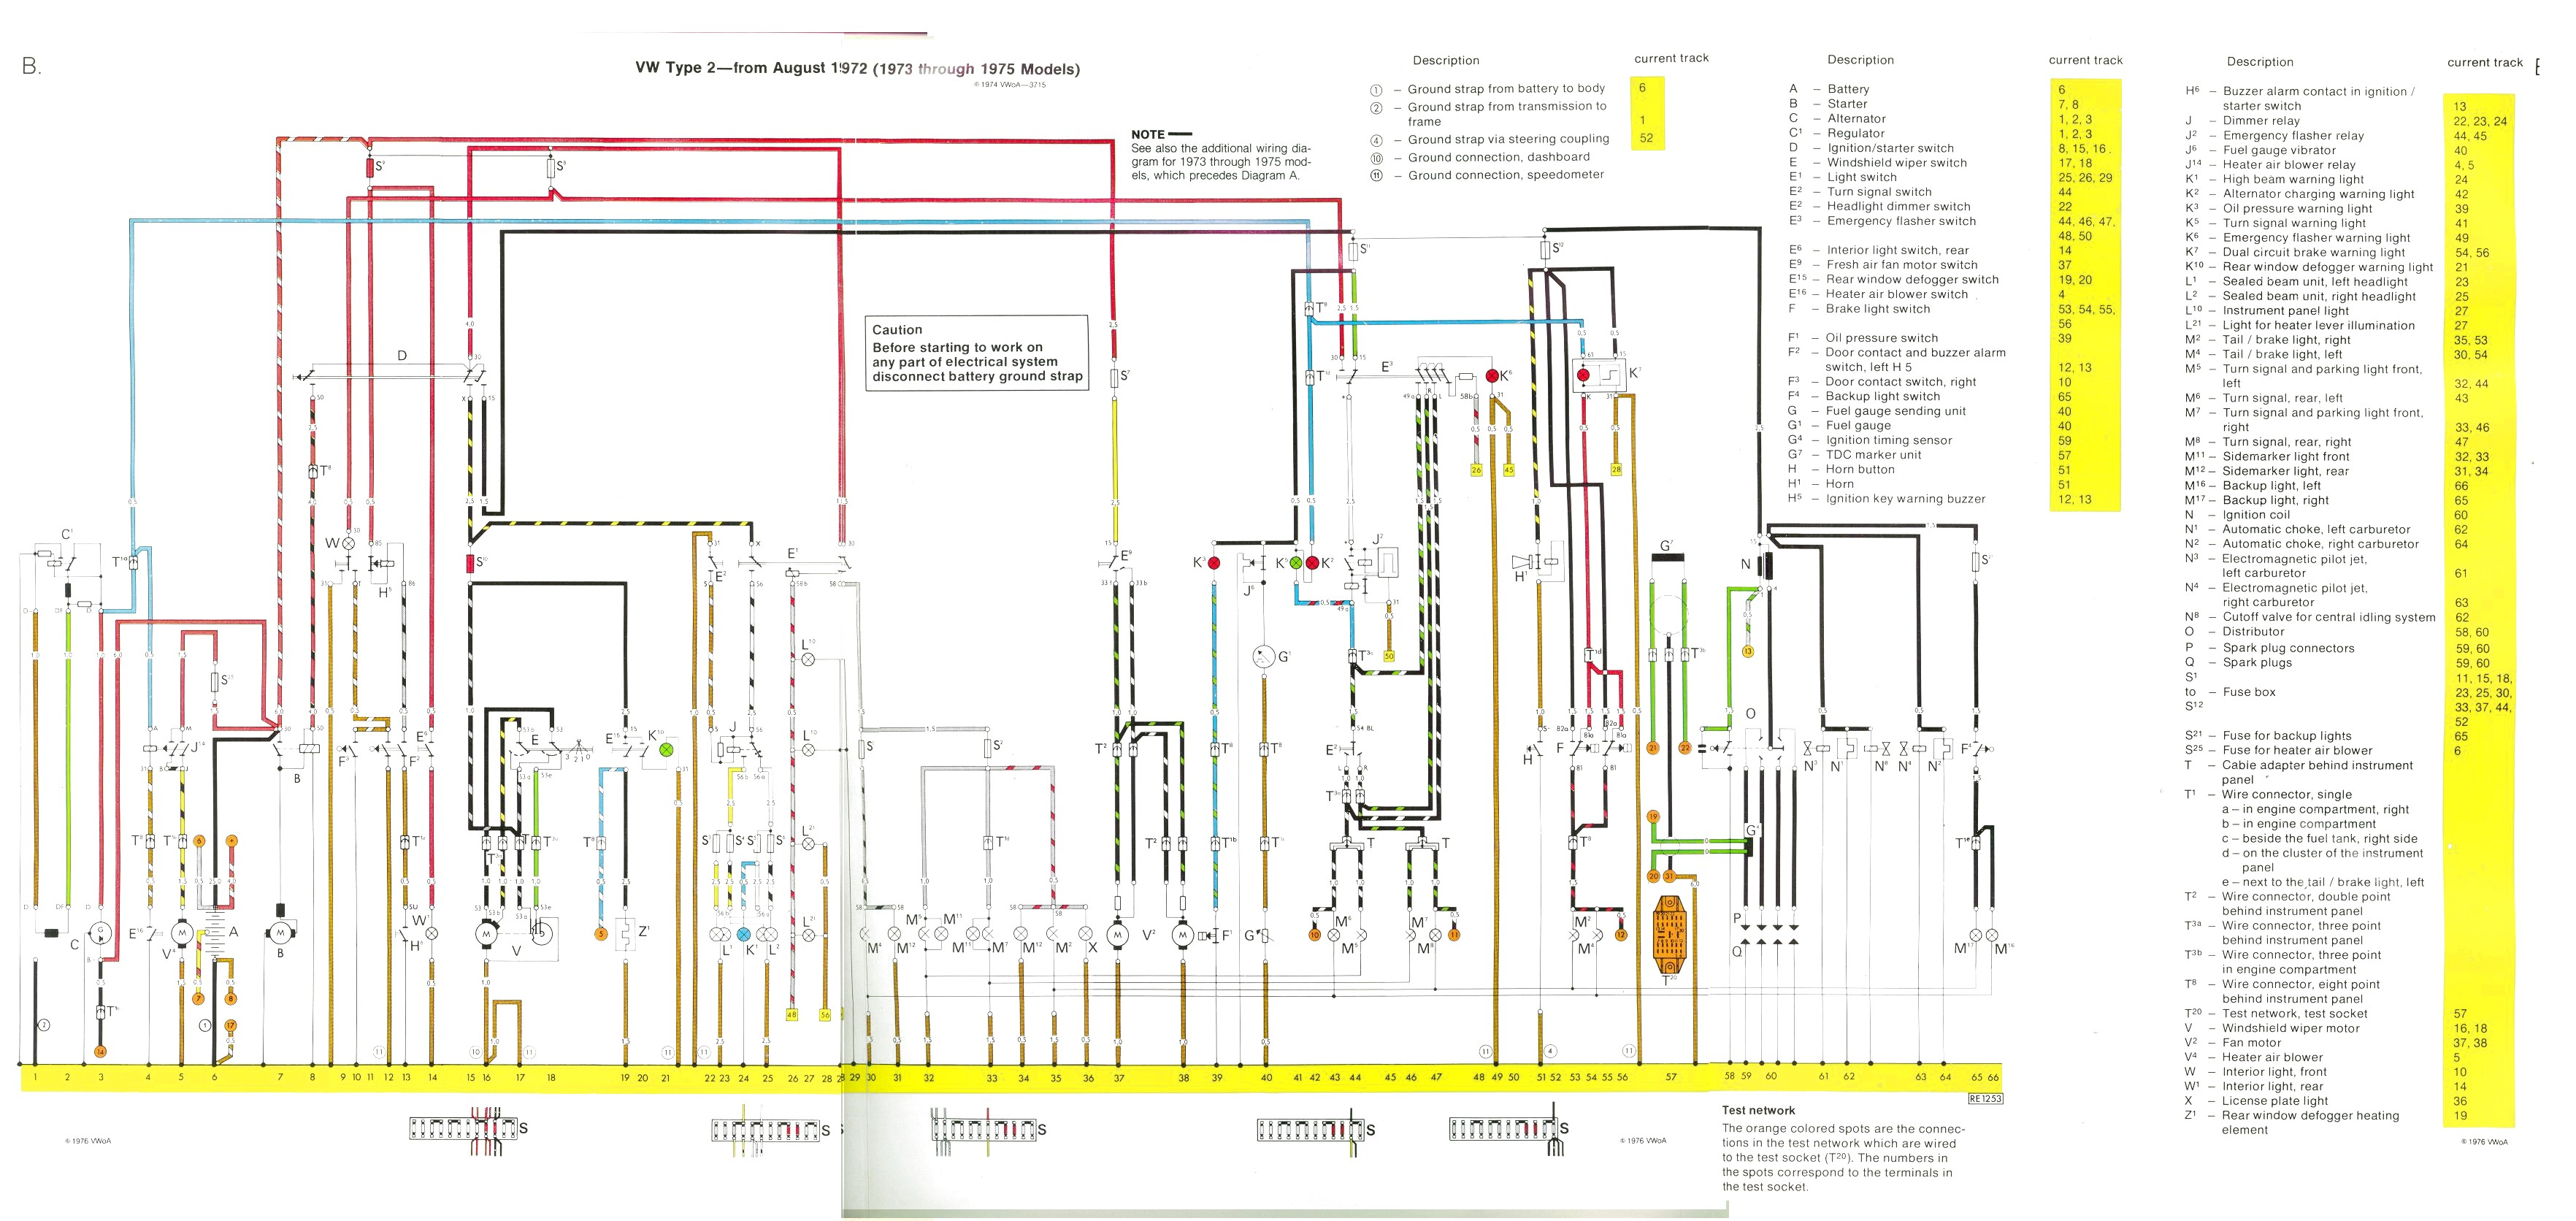 International Bus Fuse Box Diagram 07 Wiring Library 2002 Envoy August 1972 1973 Through 1975 Models